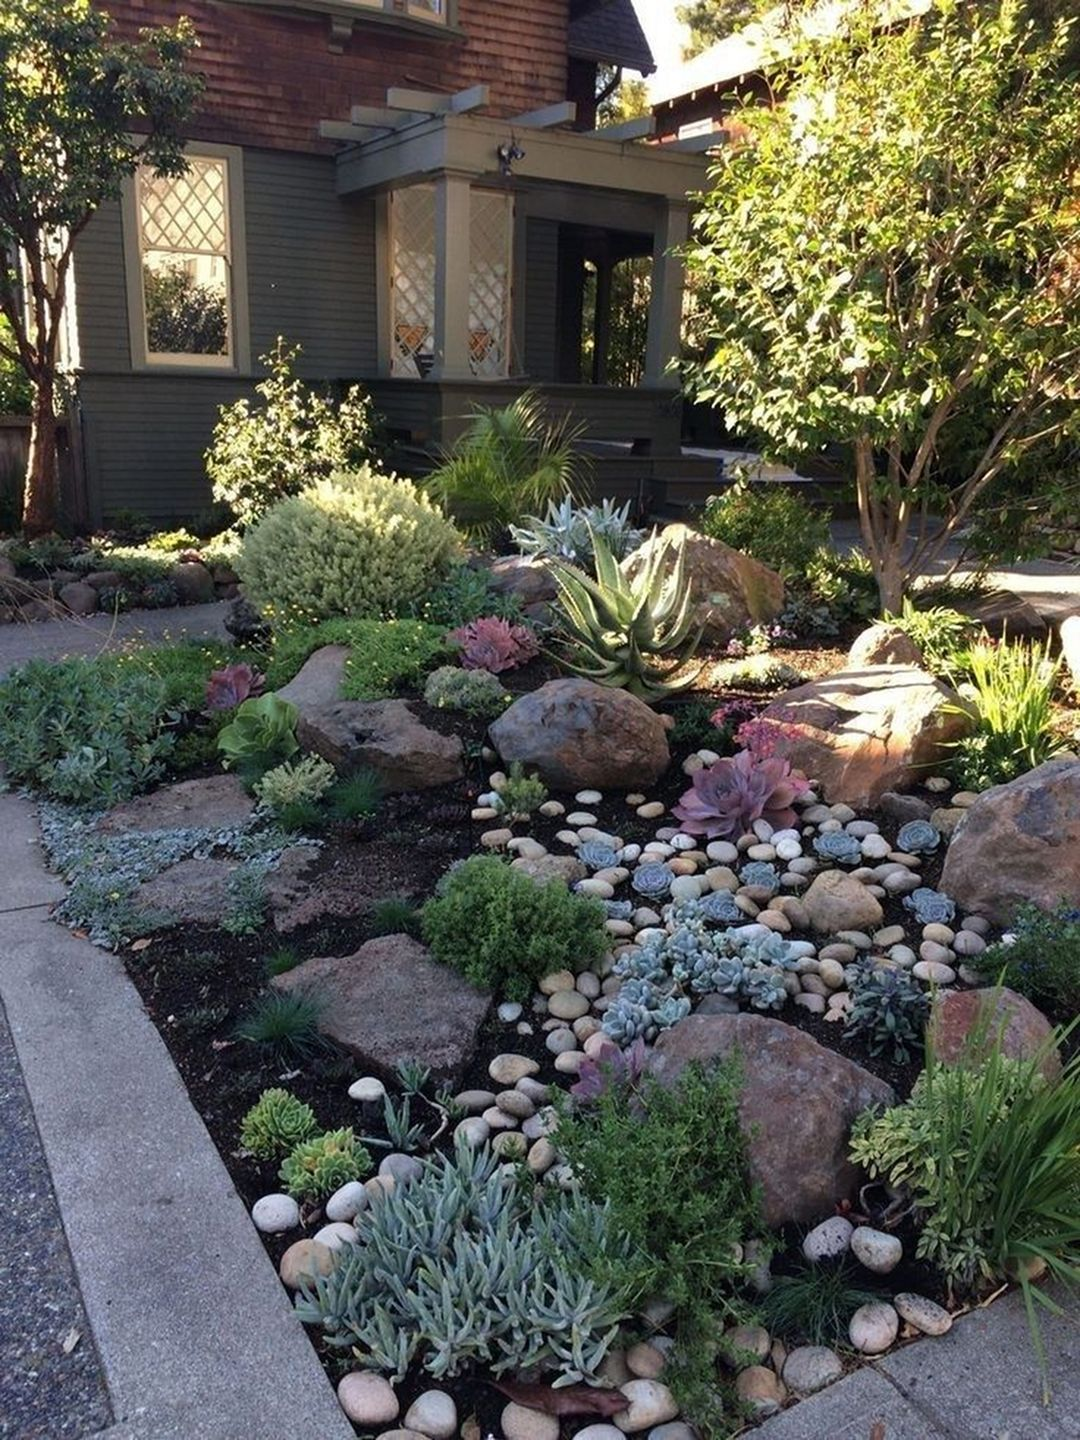 25 Wonderful Backyard Landscaping Ideas On A Budget In 2020